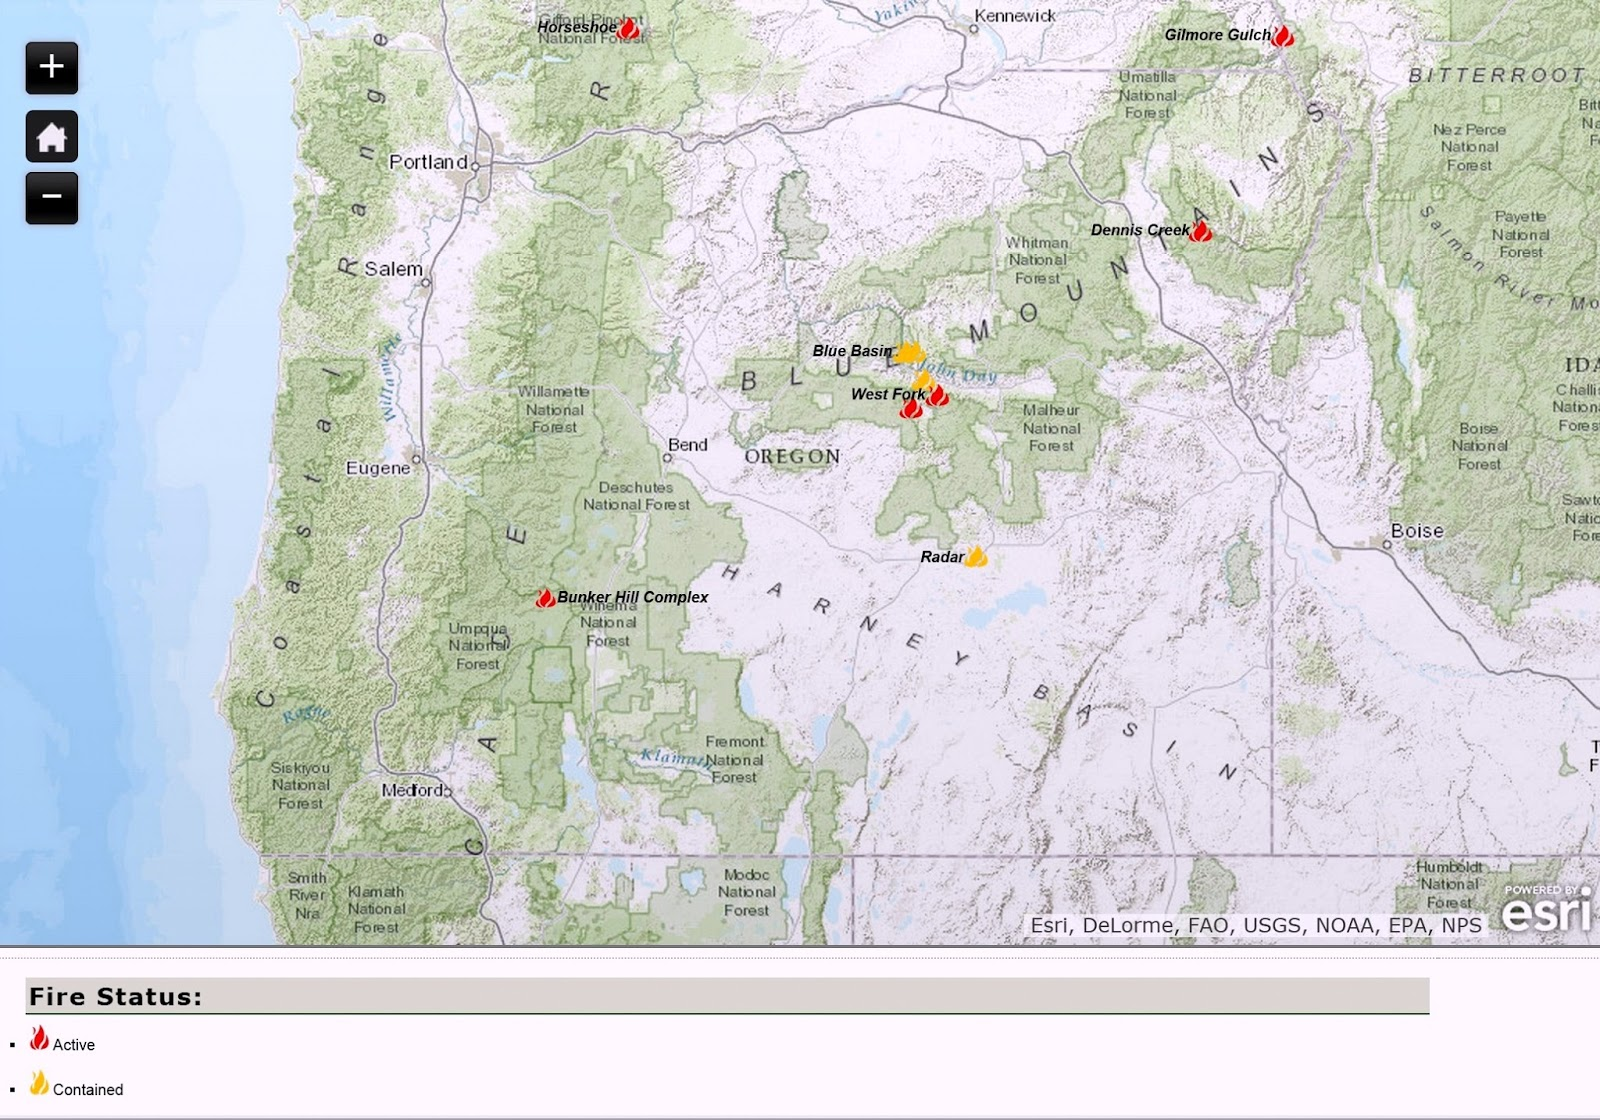 Large Wildfire Map.Oregon Smoke Information Current Oregon Wildfire Map For July 8